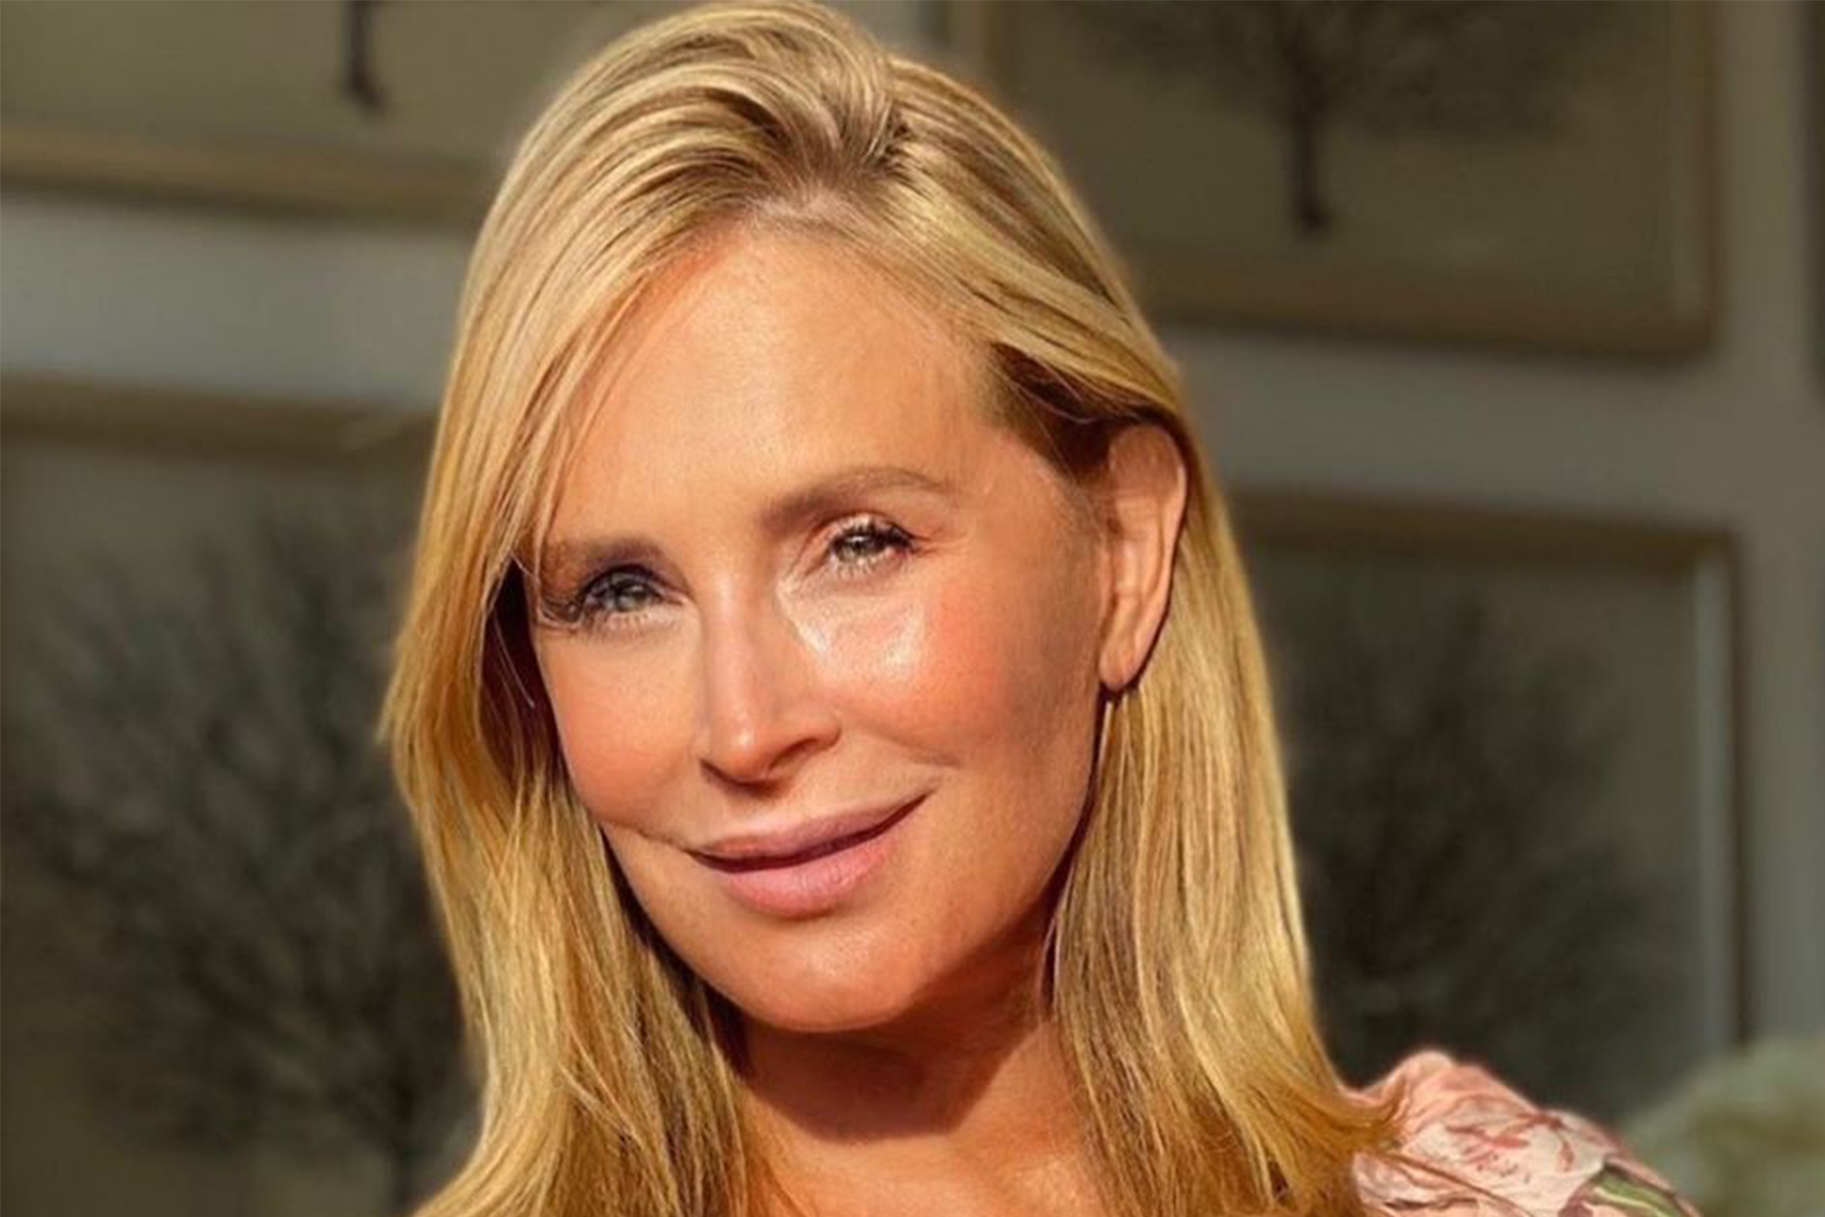 Sonja Morgan Face In Photo